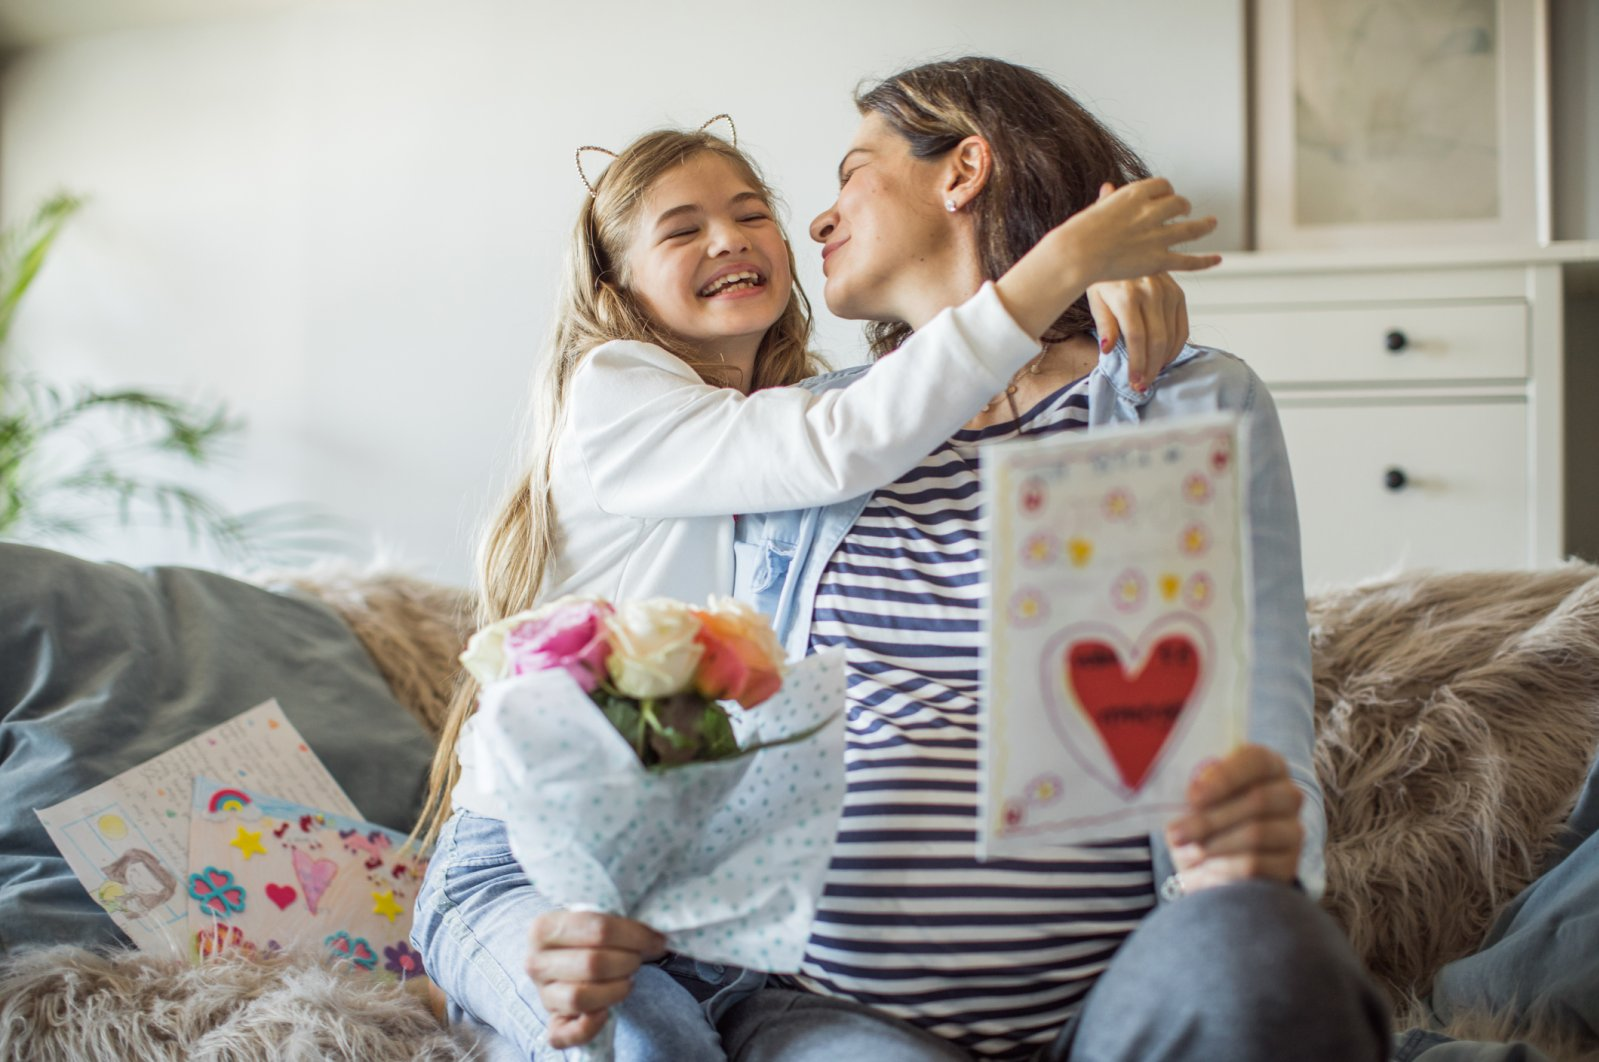 Many children like to surprise their mothers with bouquets of flowers and greeting cards on Mother's Day. (iStock Photo)